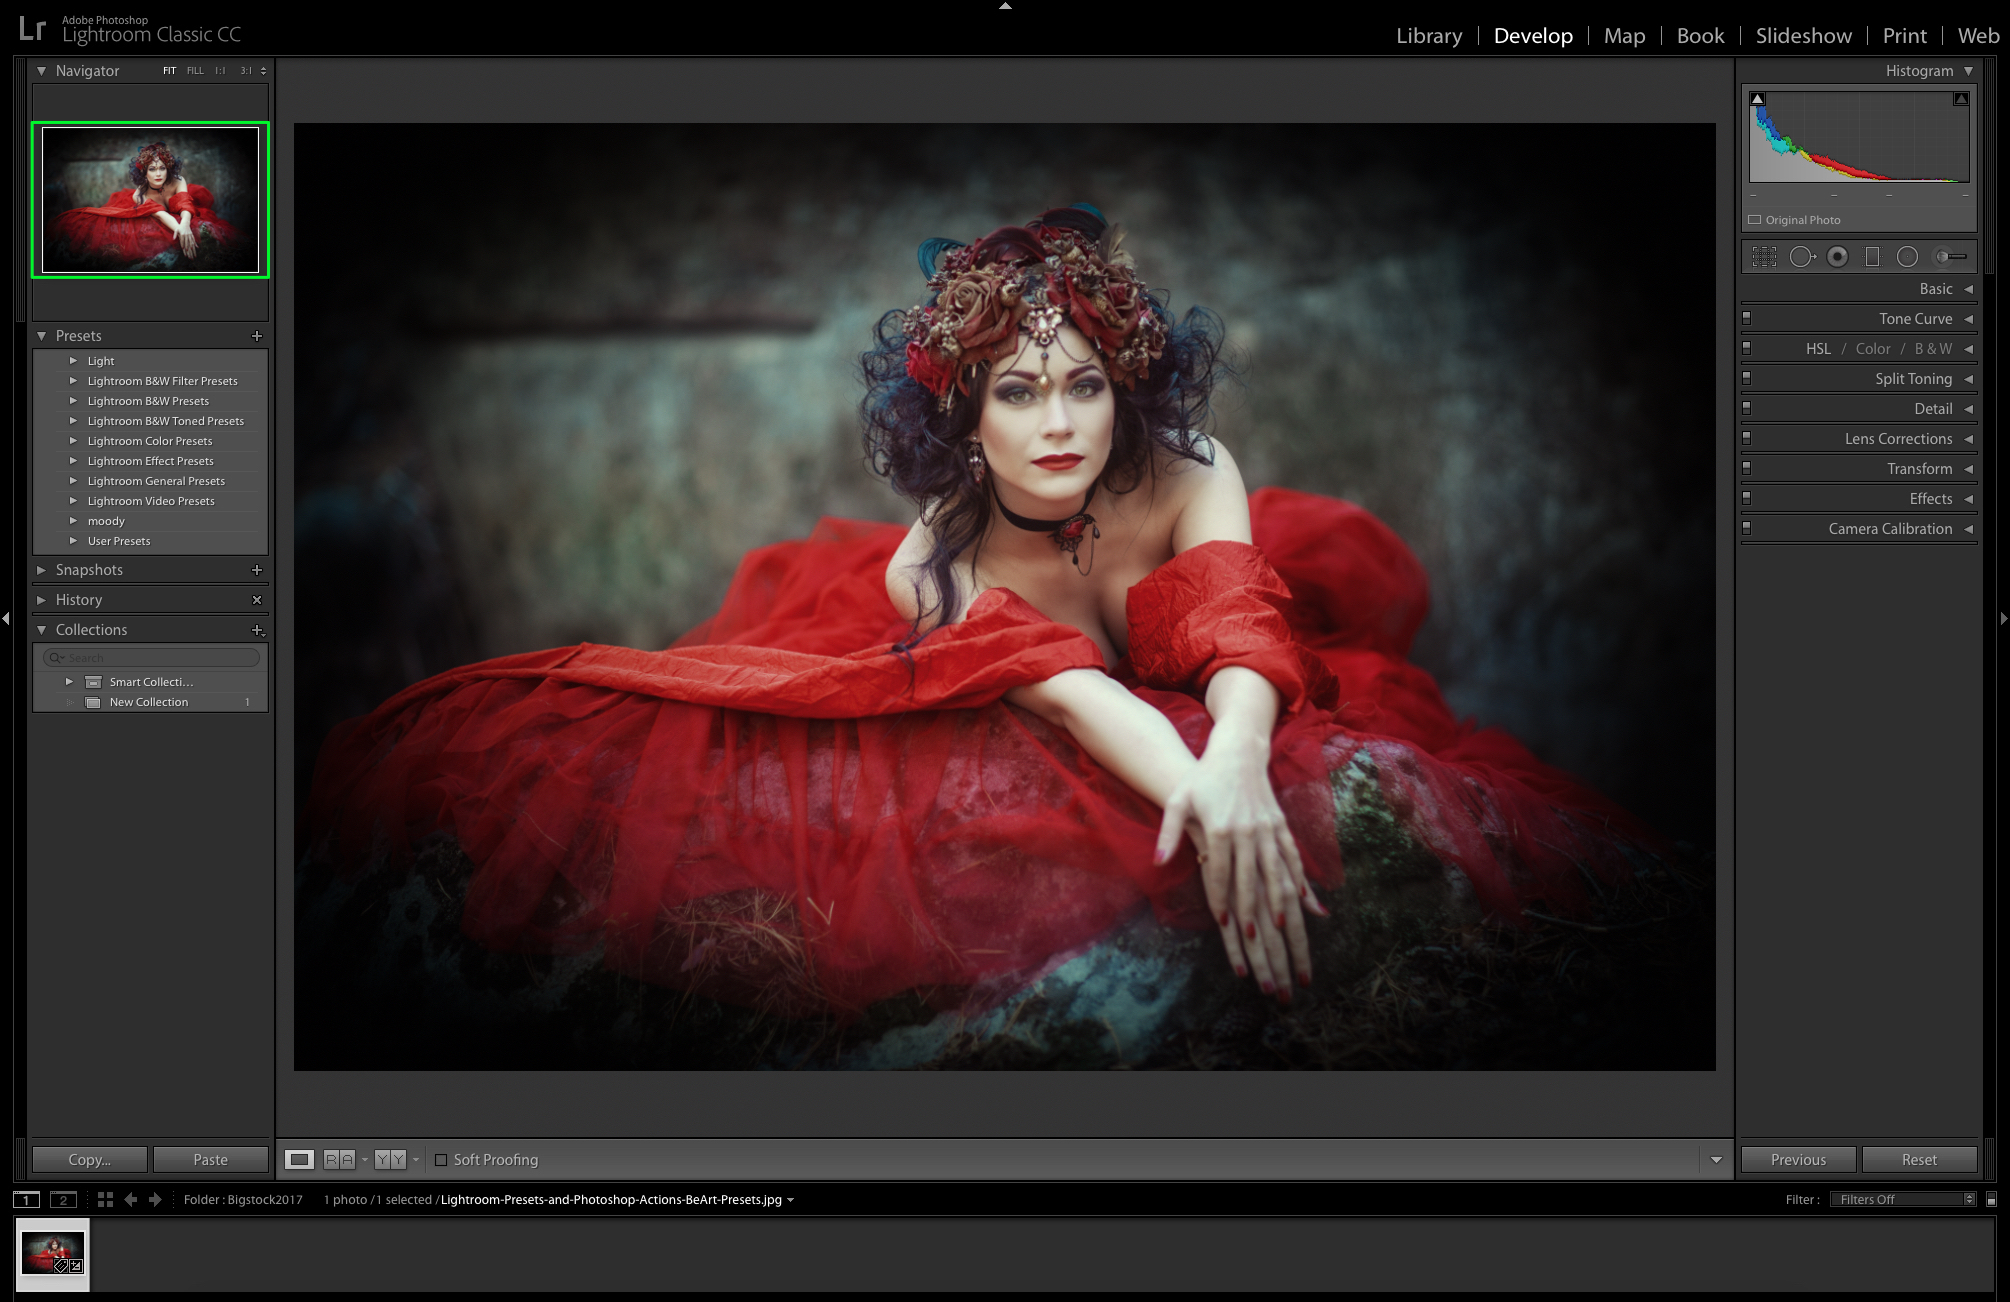 preview image in lightroom